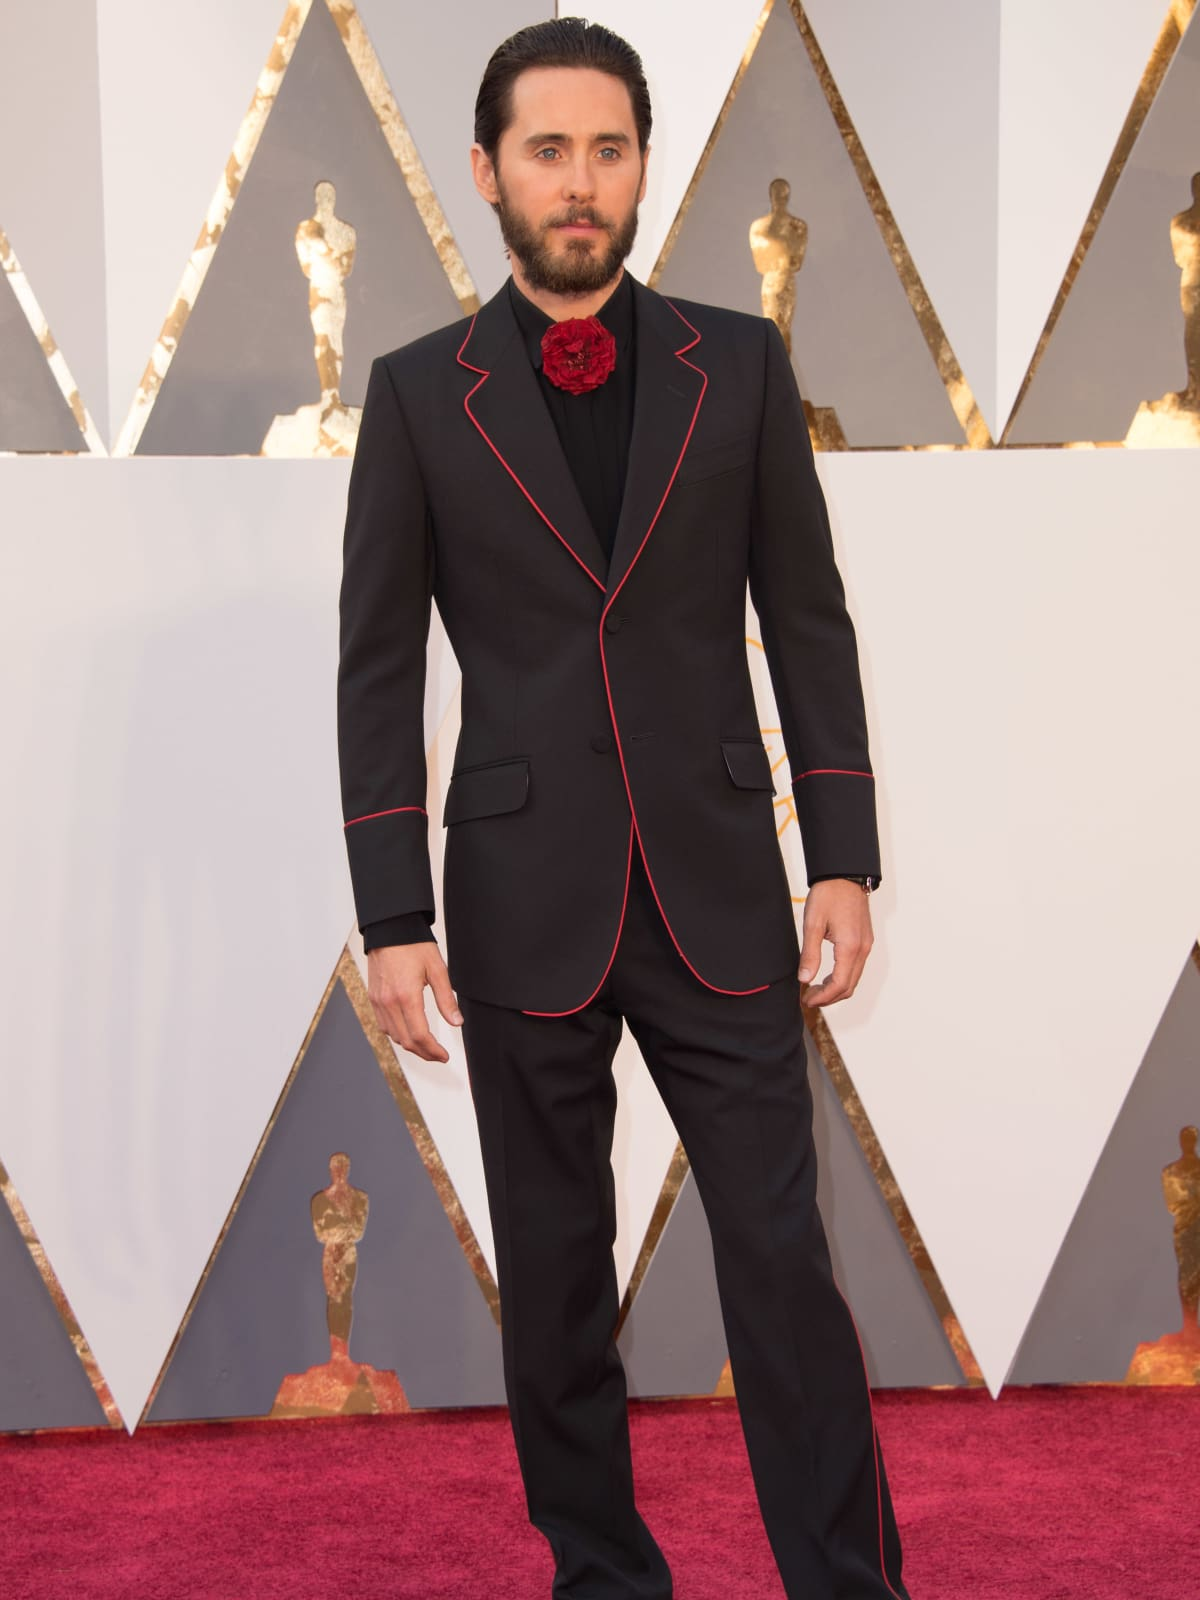 Jared Leto at Oscars